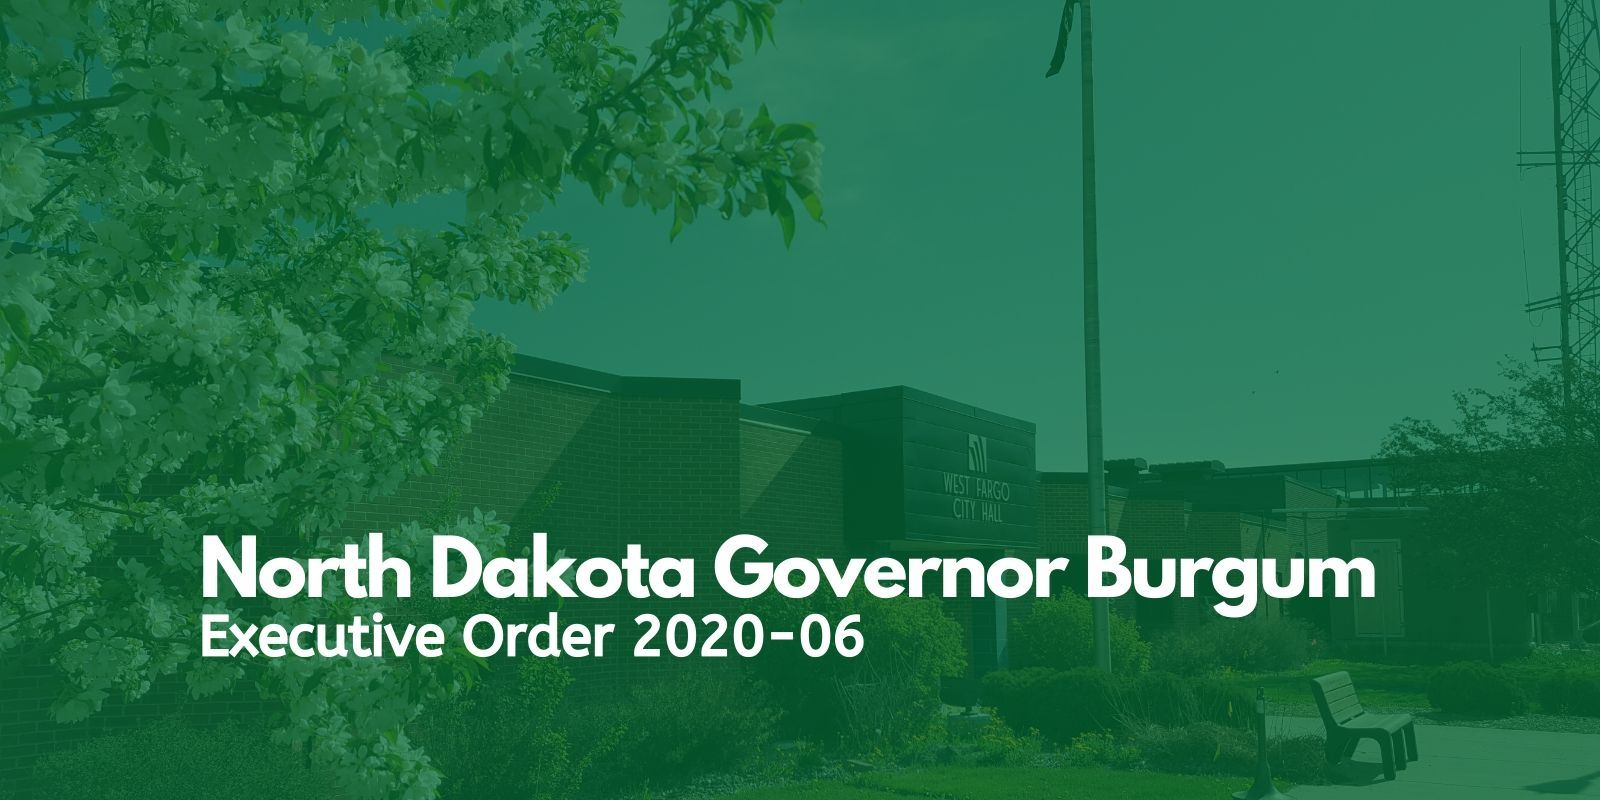 North Dakota Governor Burgum Executive Order 2020-06